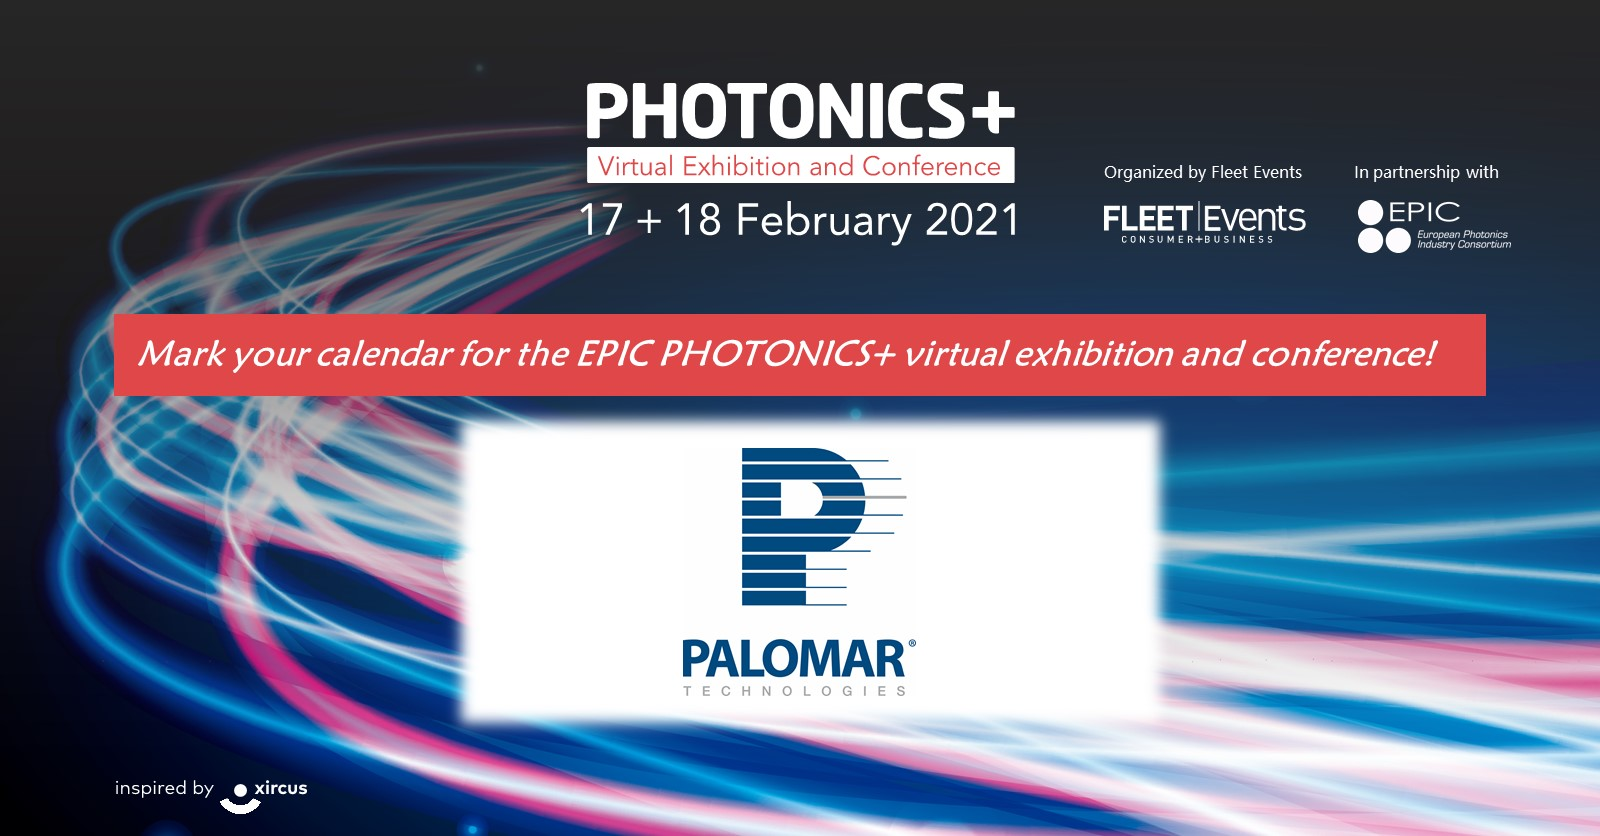 Event Image - Photonics+ Virtual Exhibition and Conference